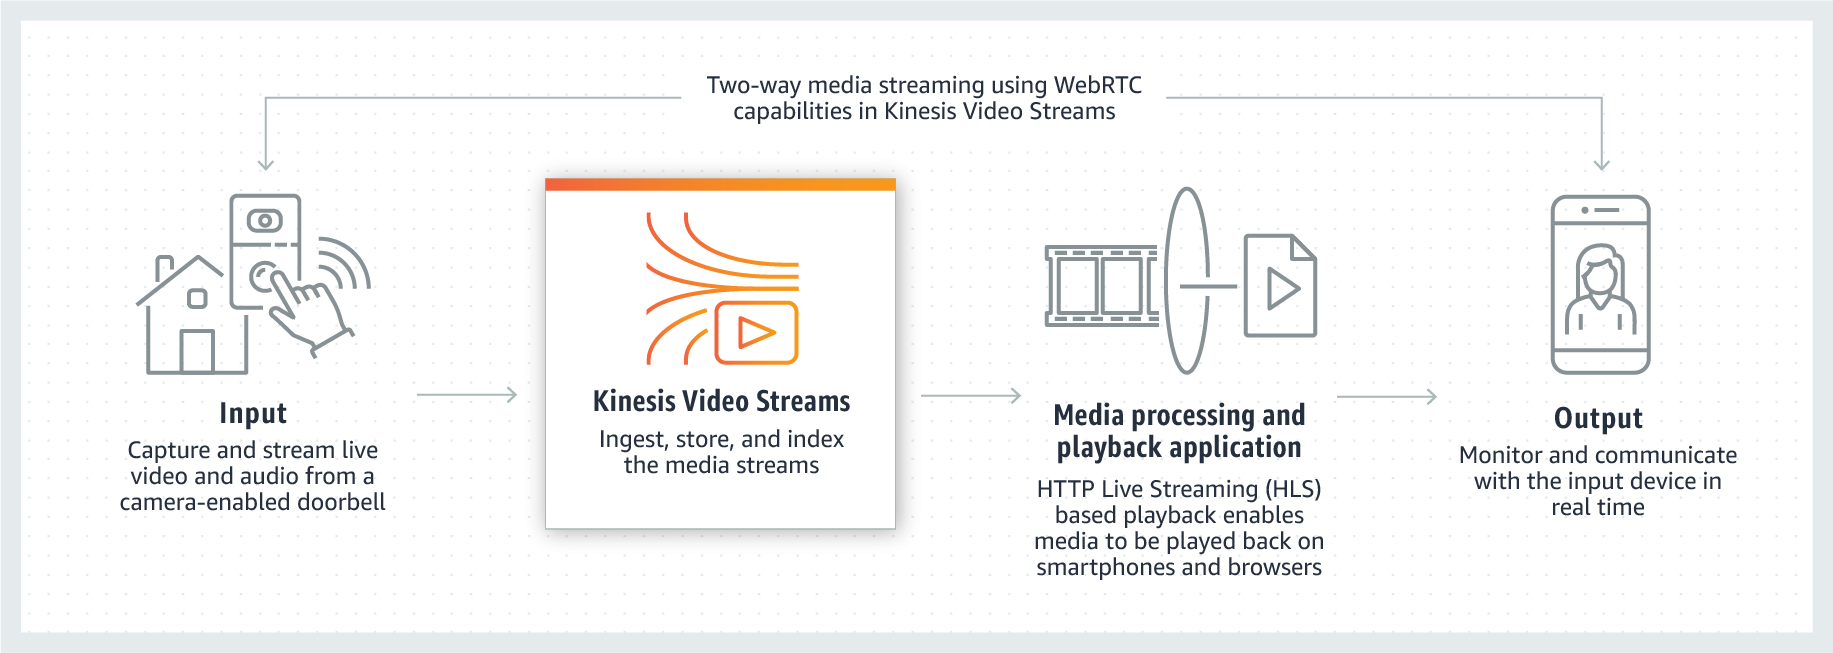 product-page-diagram_Kinesis-Video-Streams_smart-home-use-case